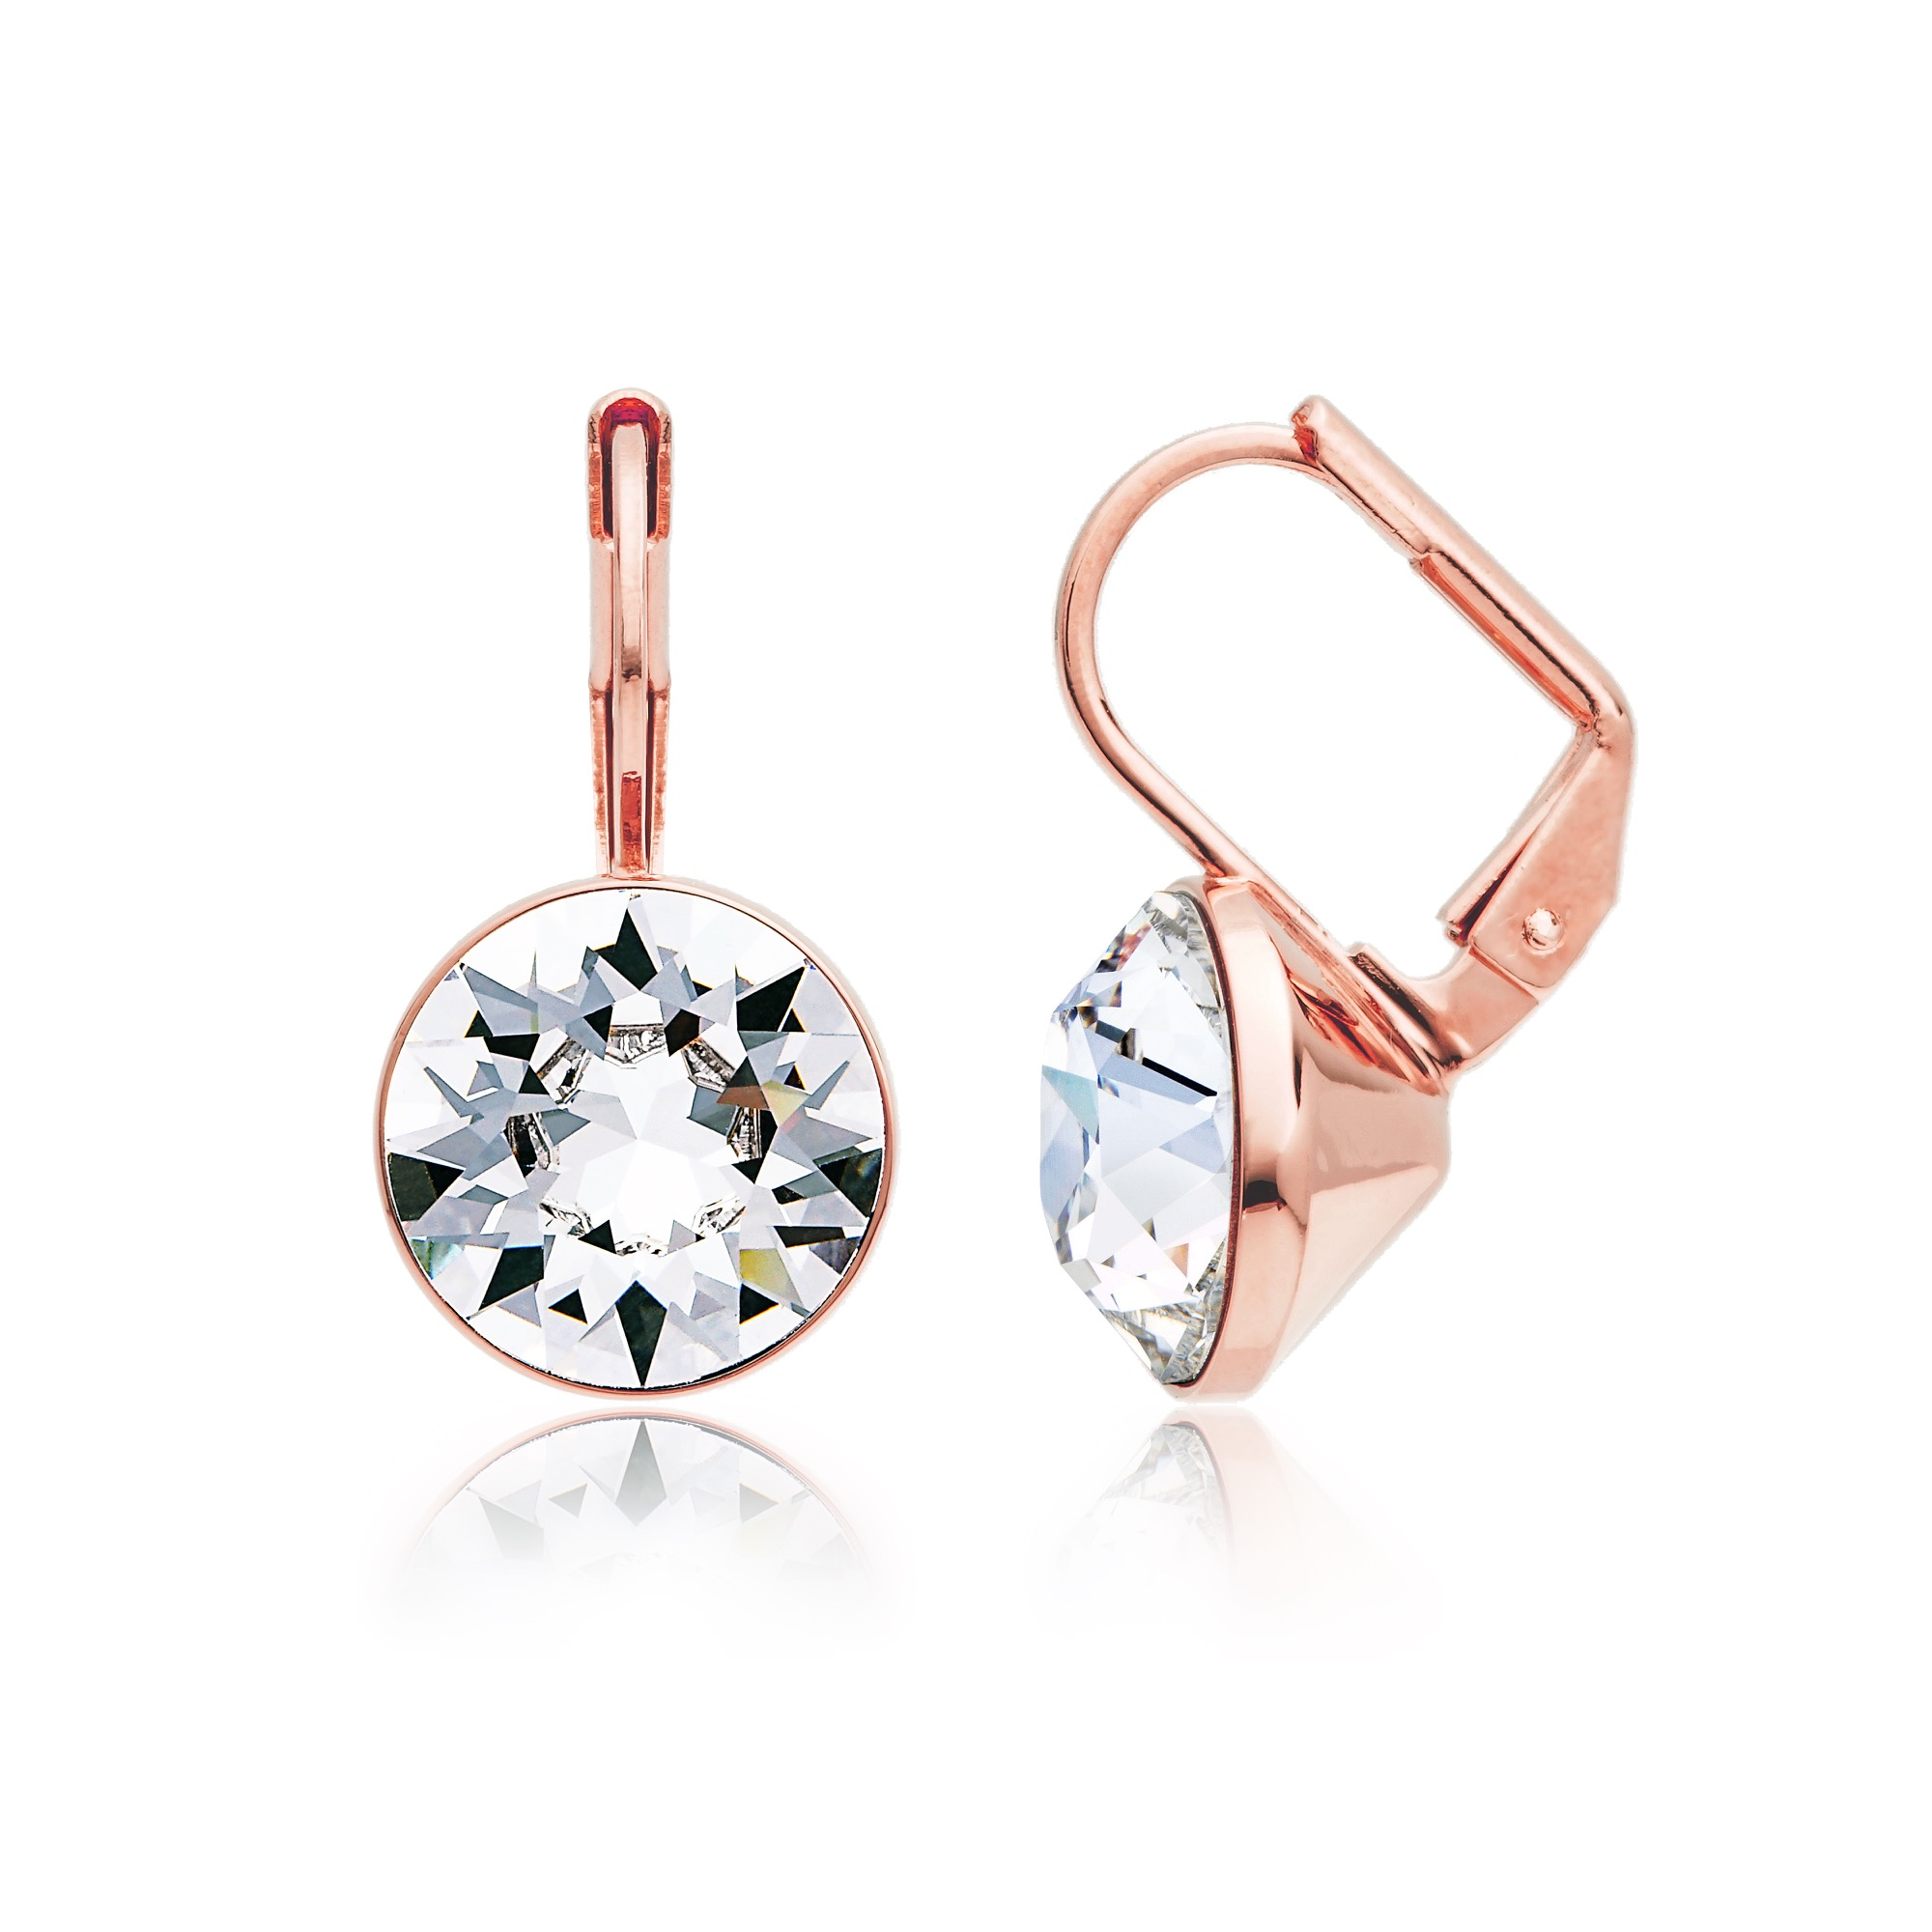 f028f7179 Bella Earrings with 4 Carat Clear Swarovski® Crystals Rose Gold Plated